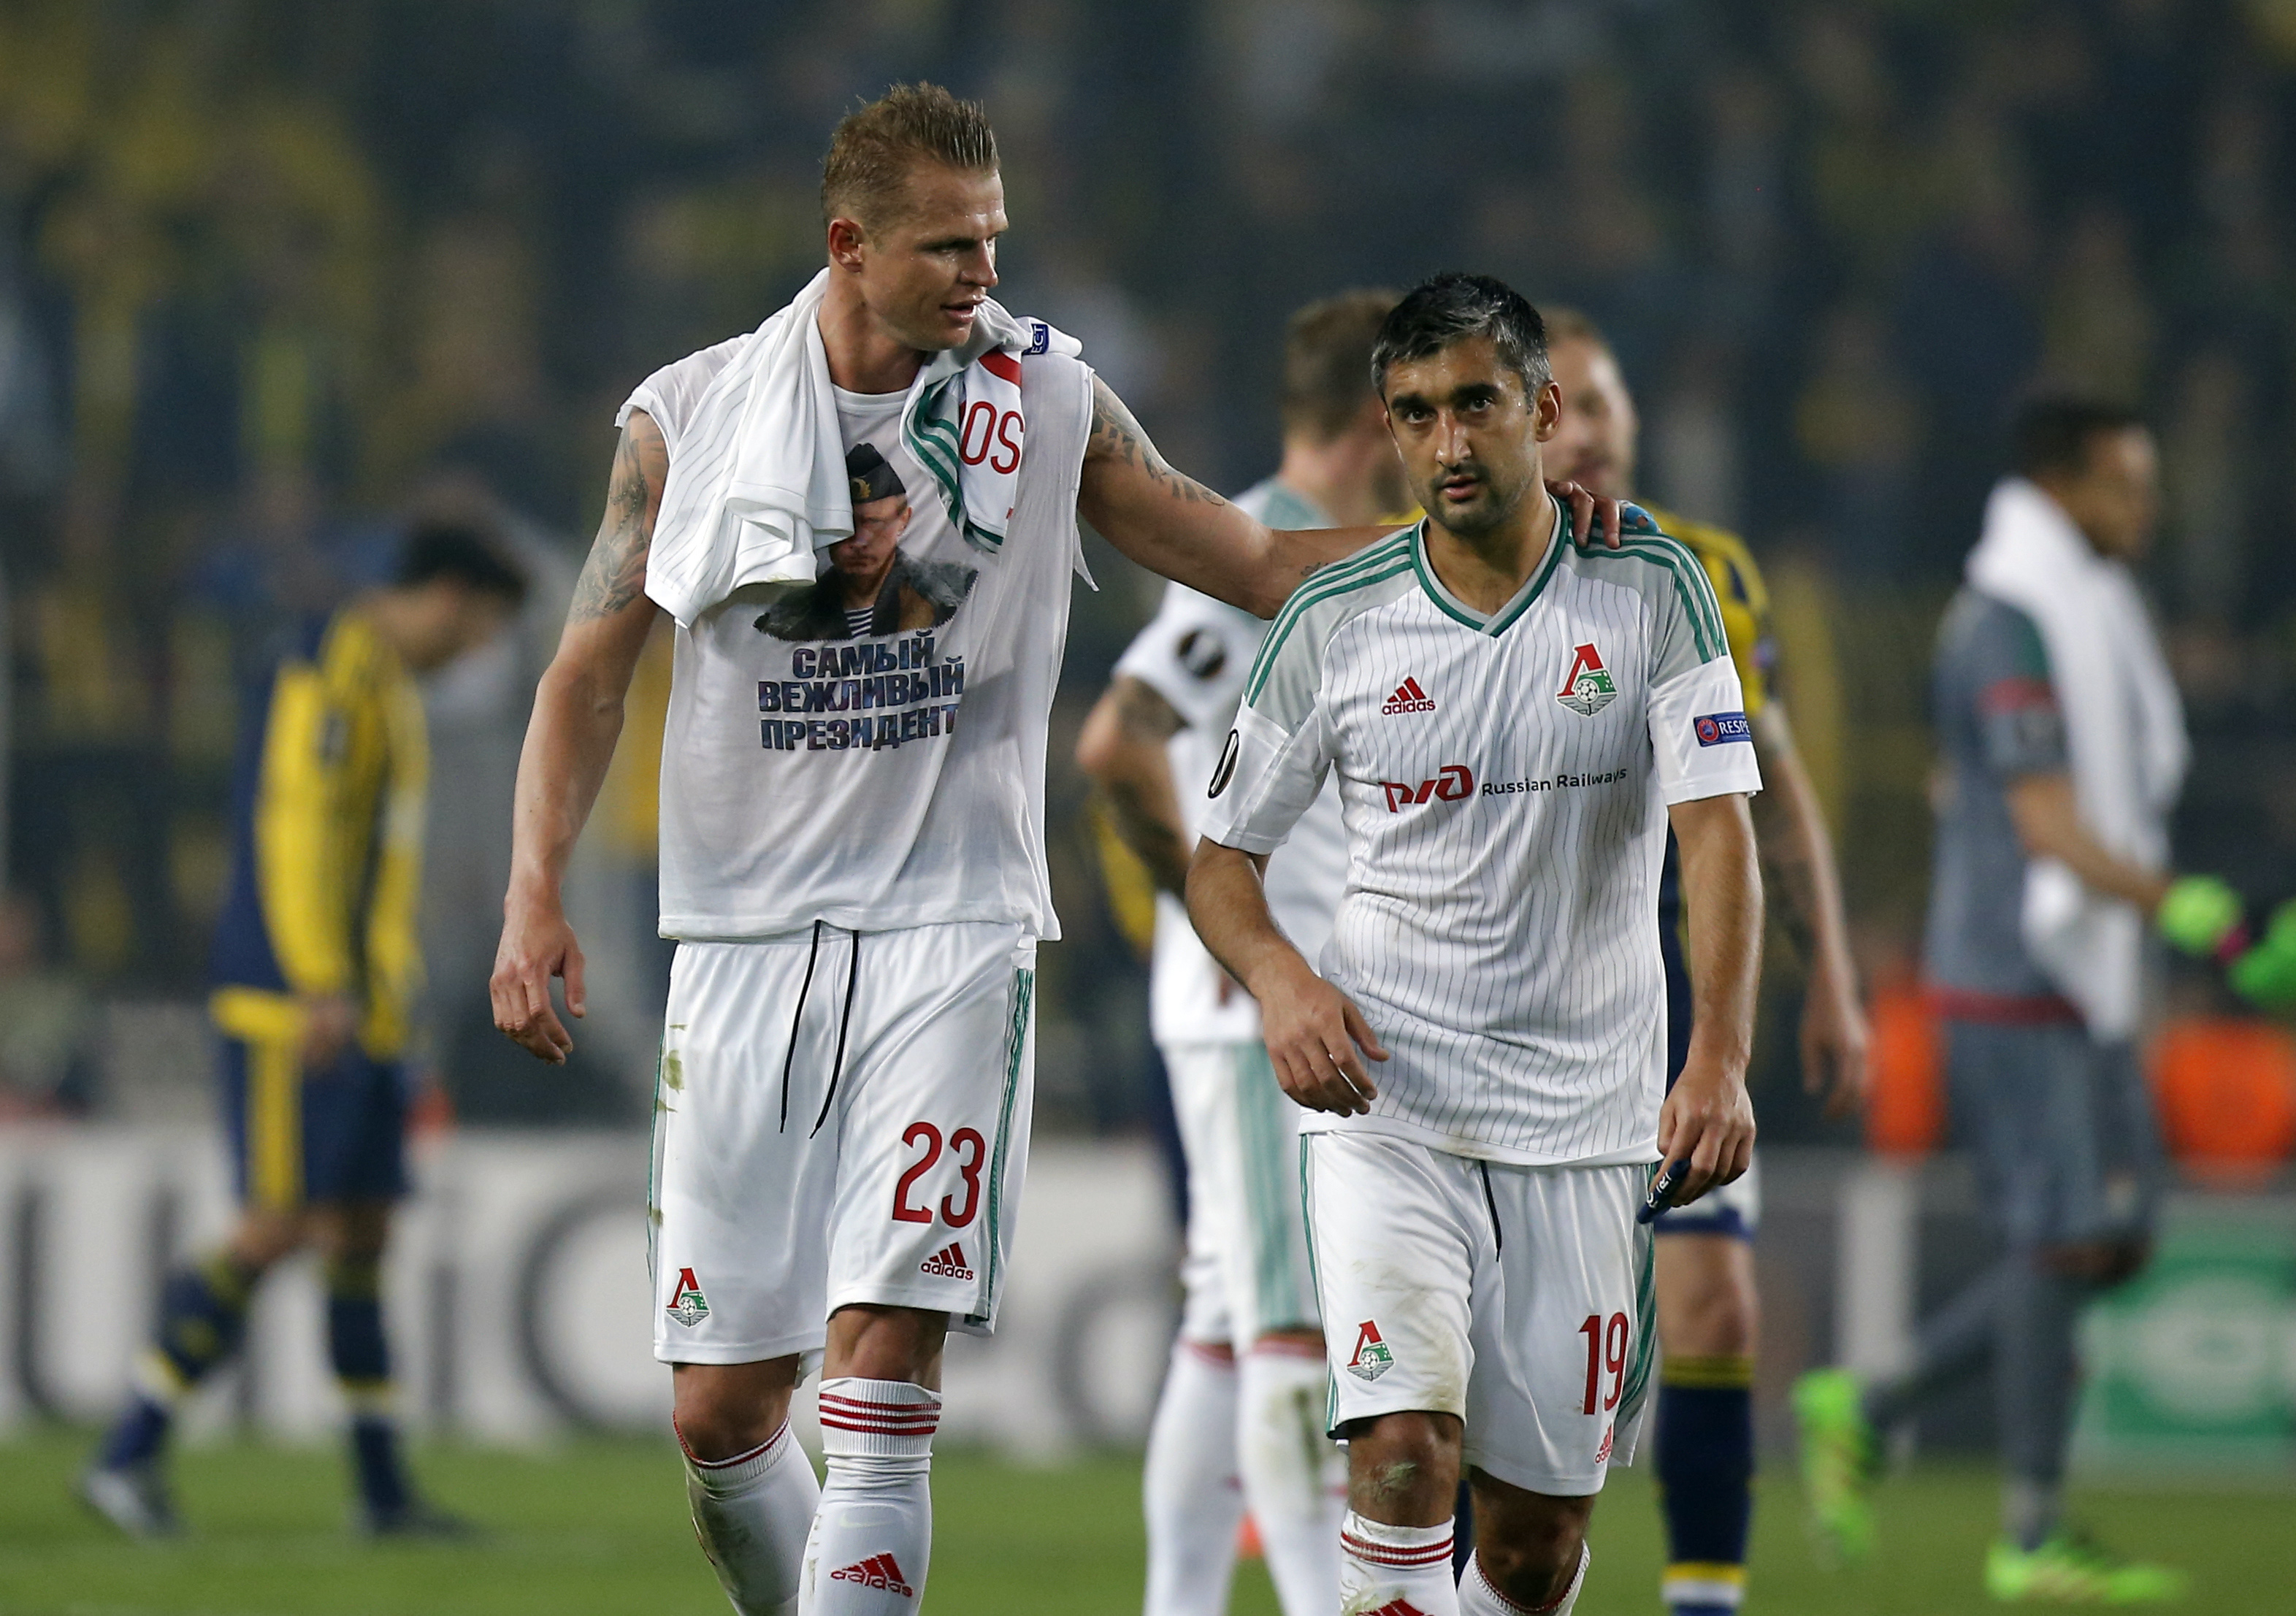 turkey_russia_soccer_europa_league228014_r443.jpg